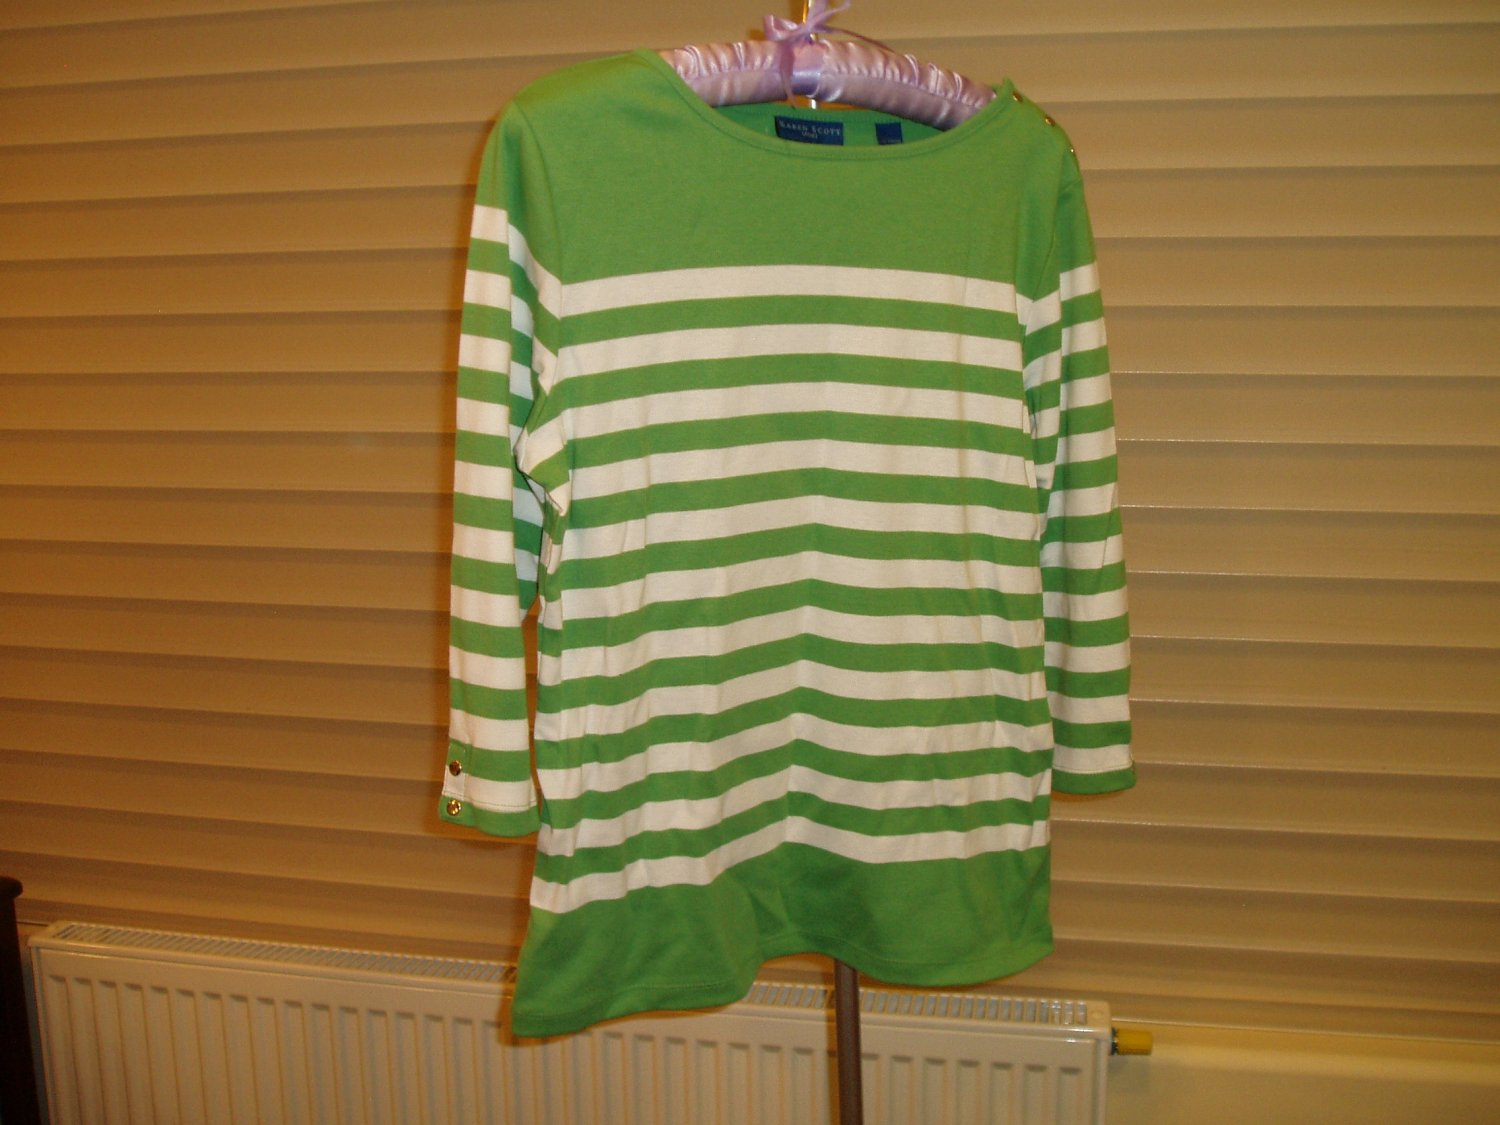 Green with white stripes sweater with 3/4 sleeve, size Small, S